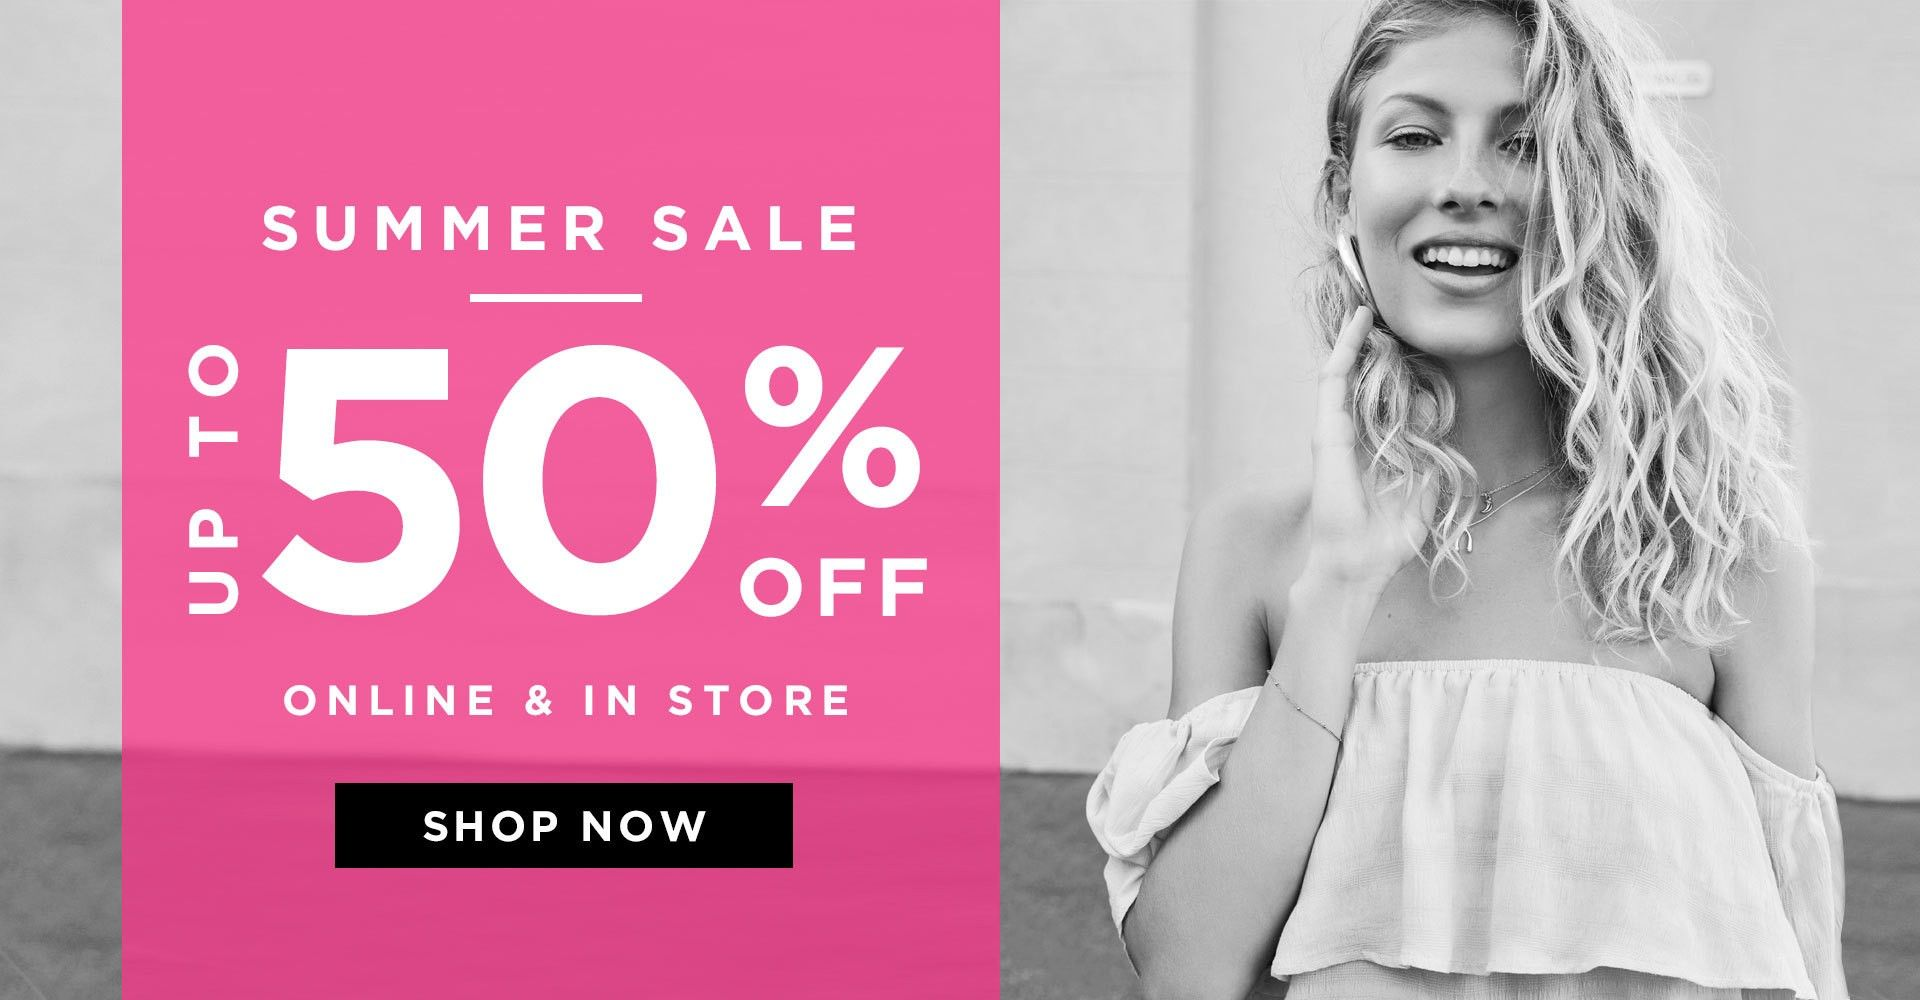 Glassons.com is one of New Zealand and Australia's ...